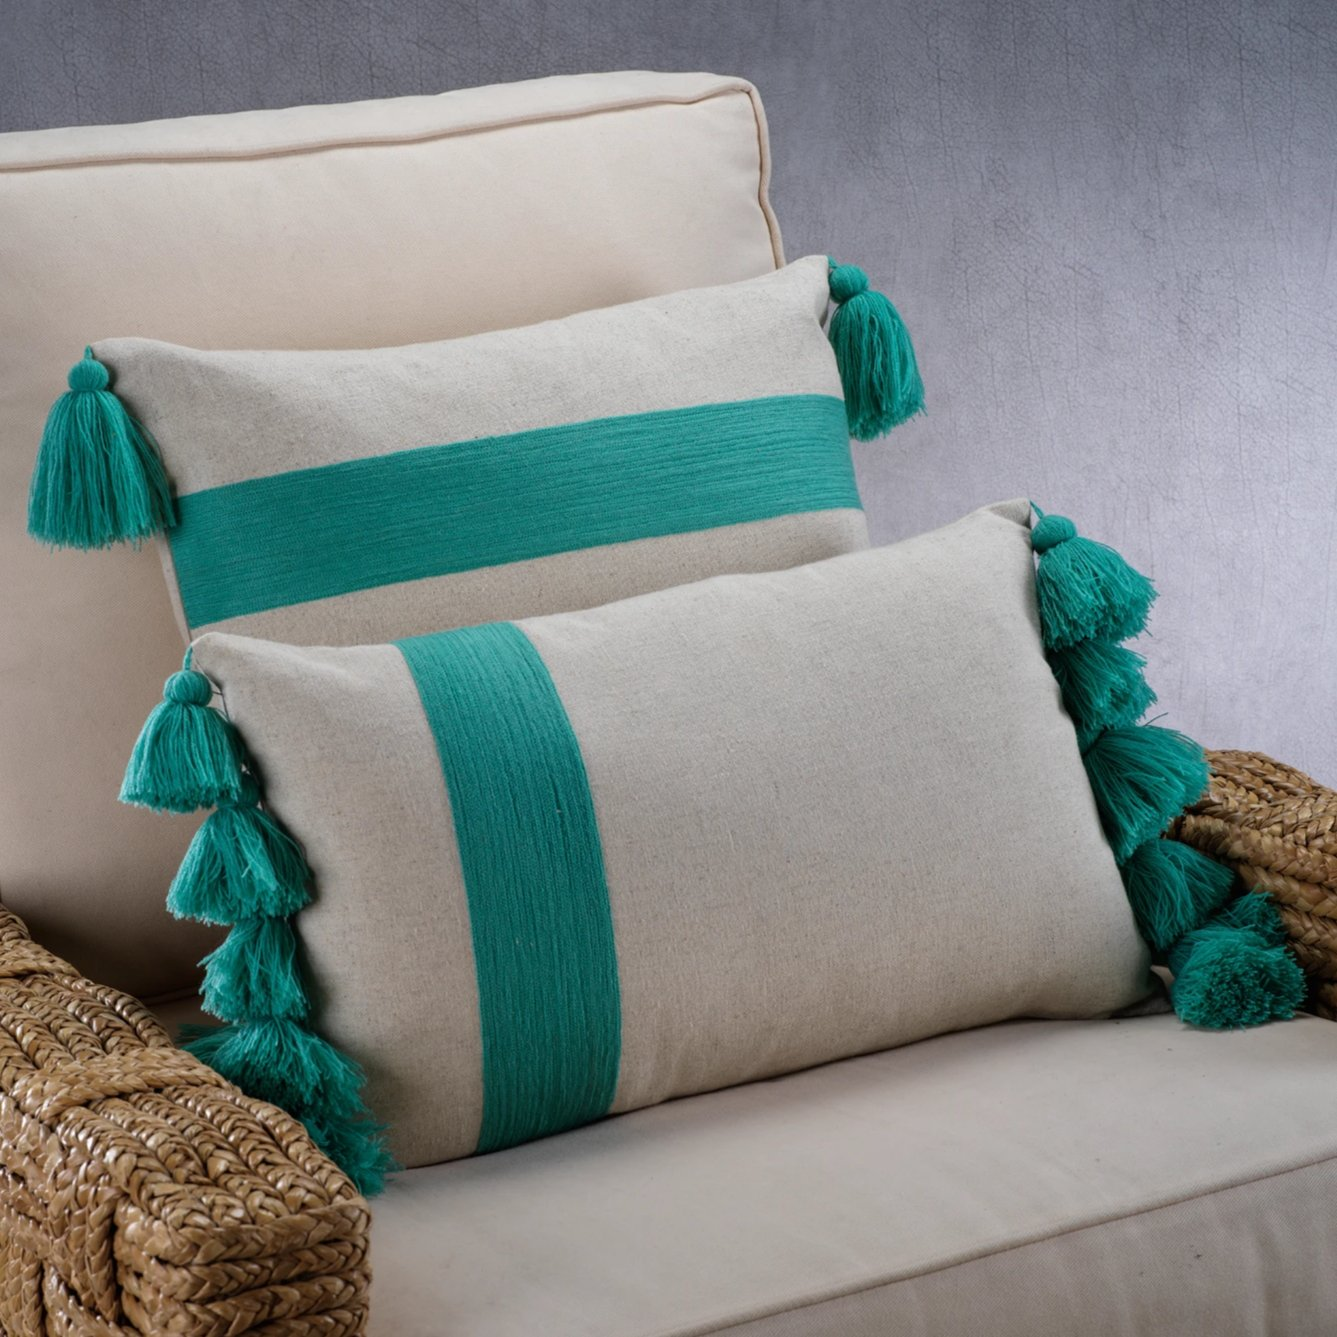 Polignano Embroidered Throw Pillow w/Tassels - Turquoise - CARLYLE AVENUE